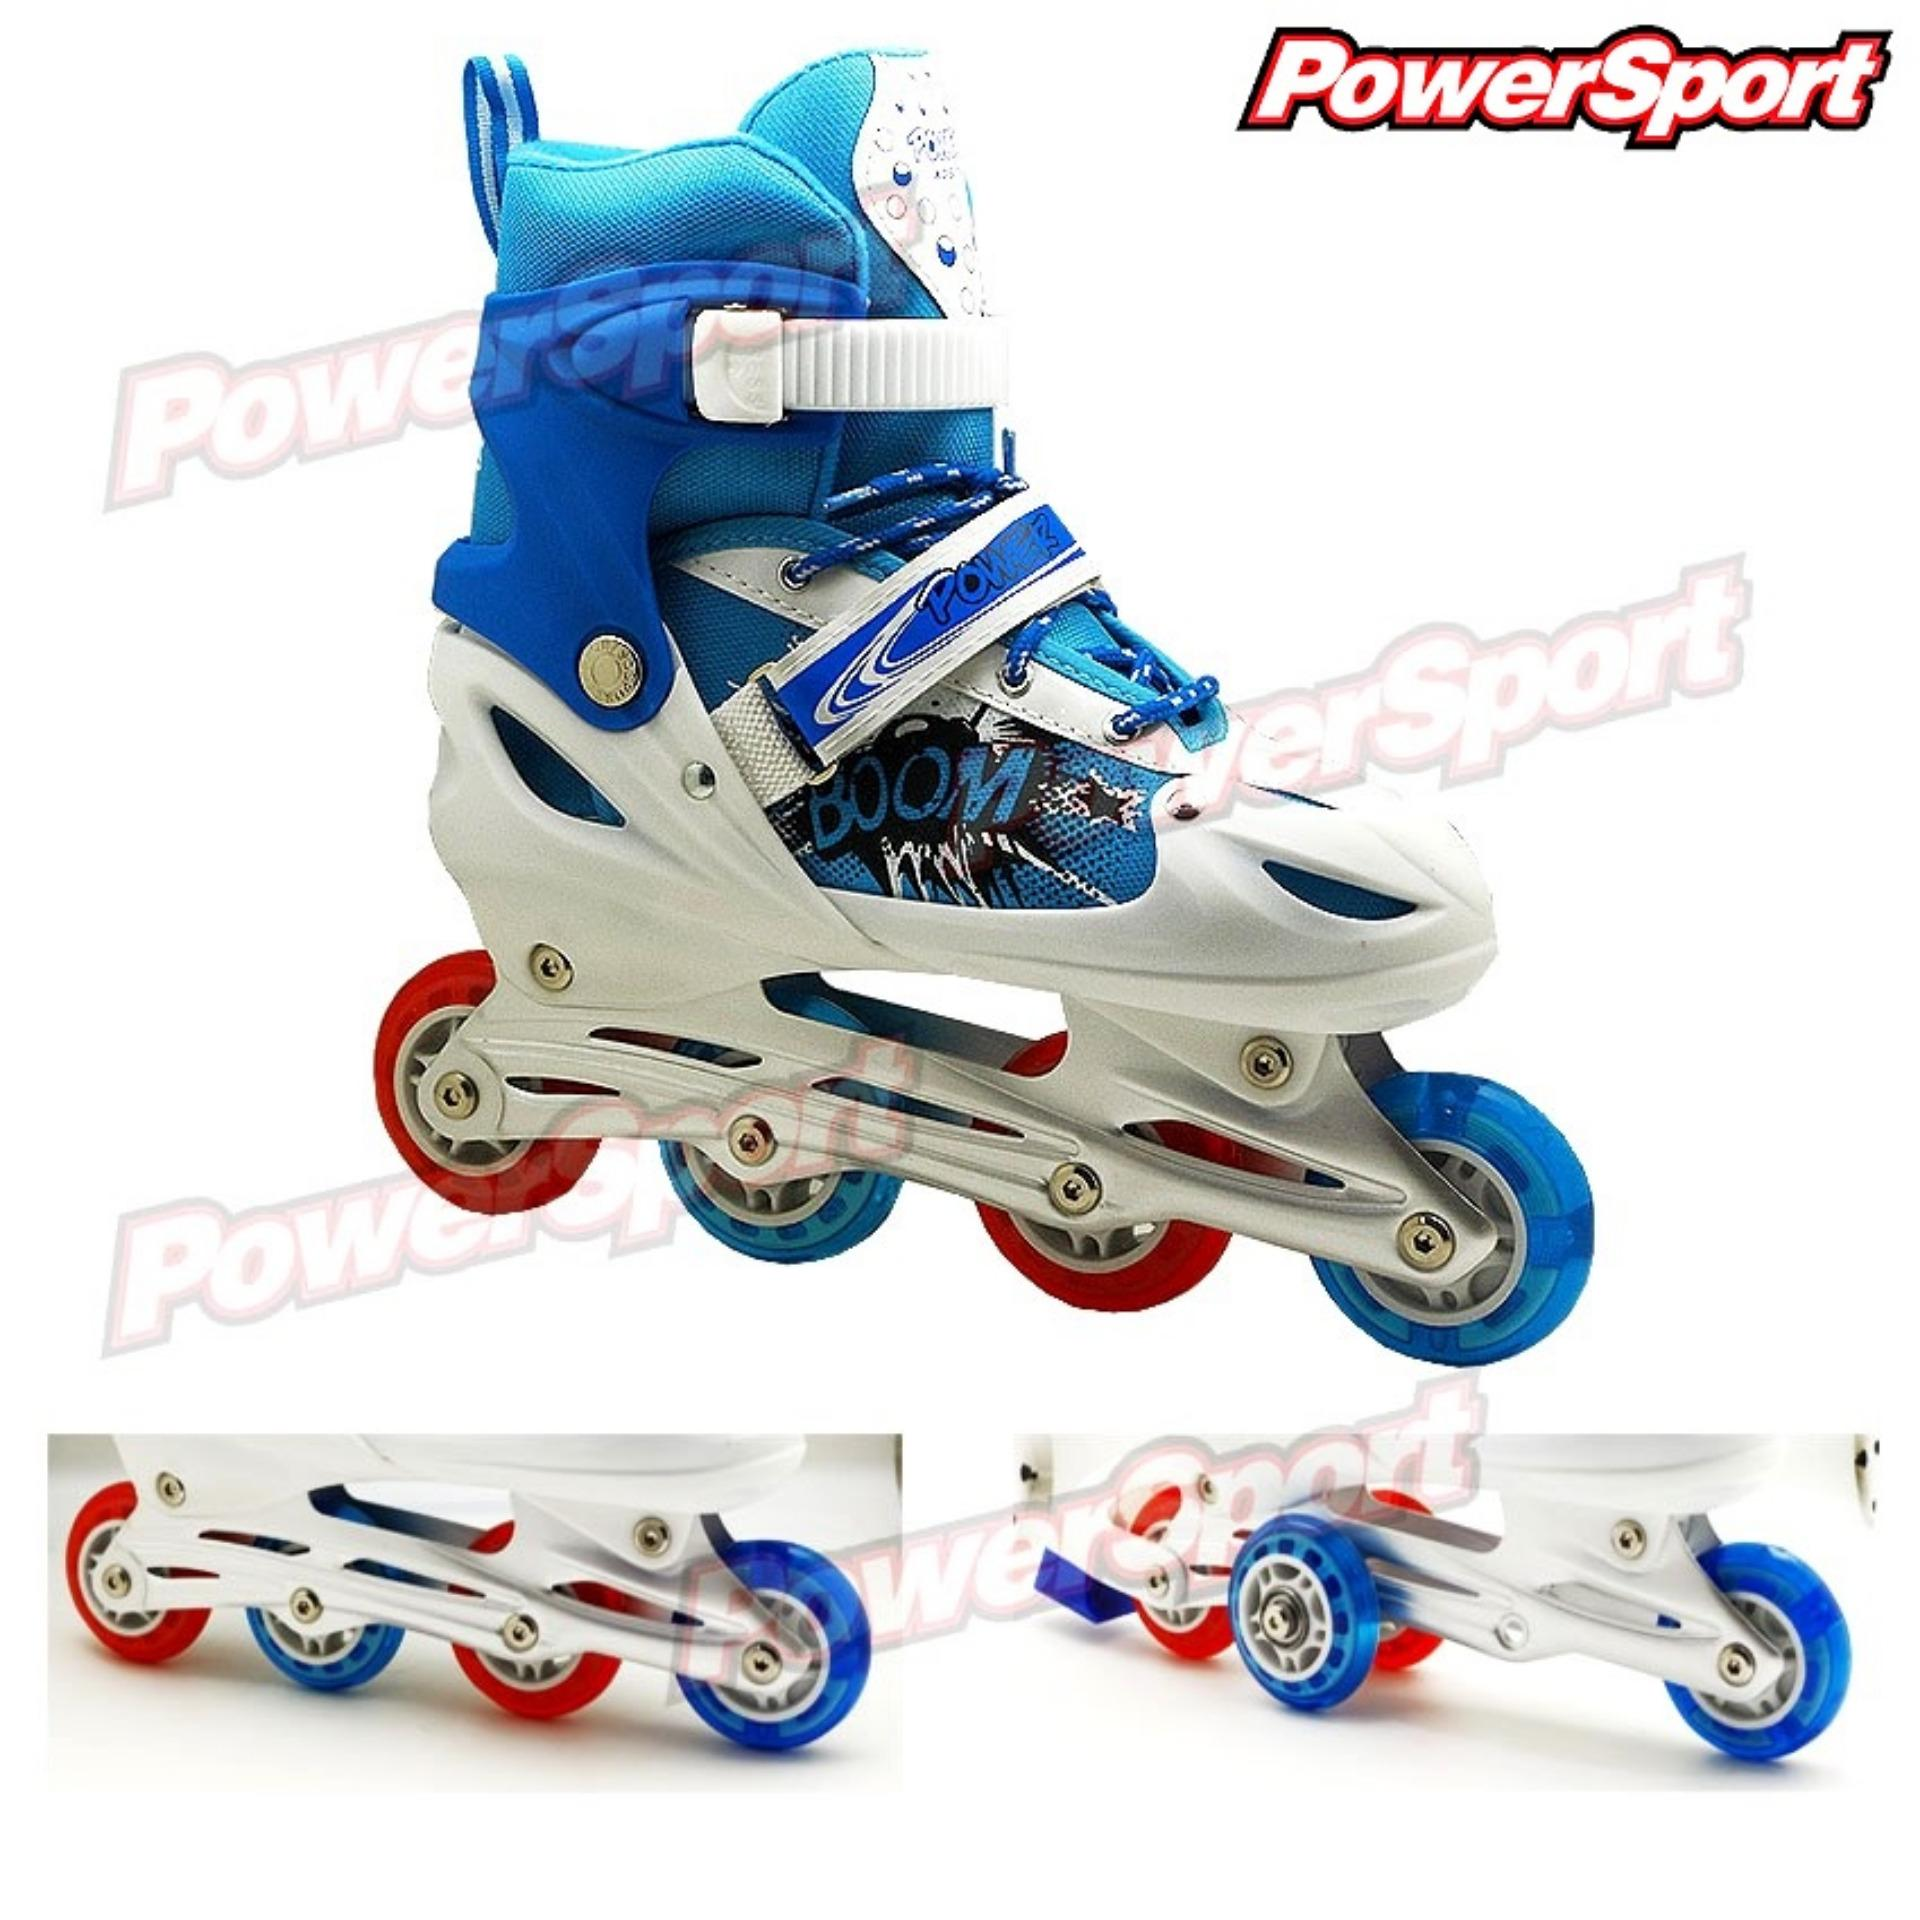 Review Toko Powersport Boom Inline Skate Sepatu Roda Adjustable Wheel Biru L 38 42 Online